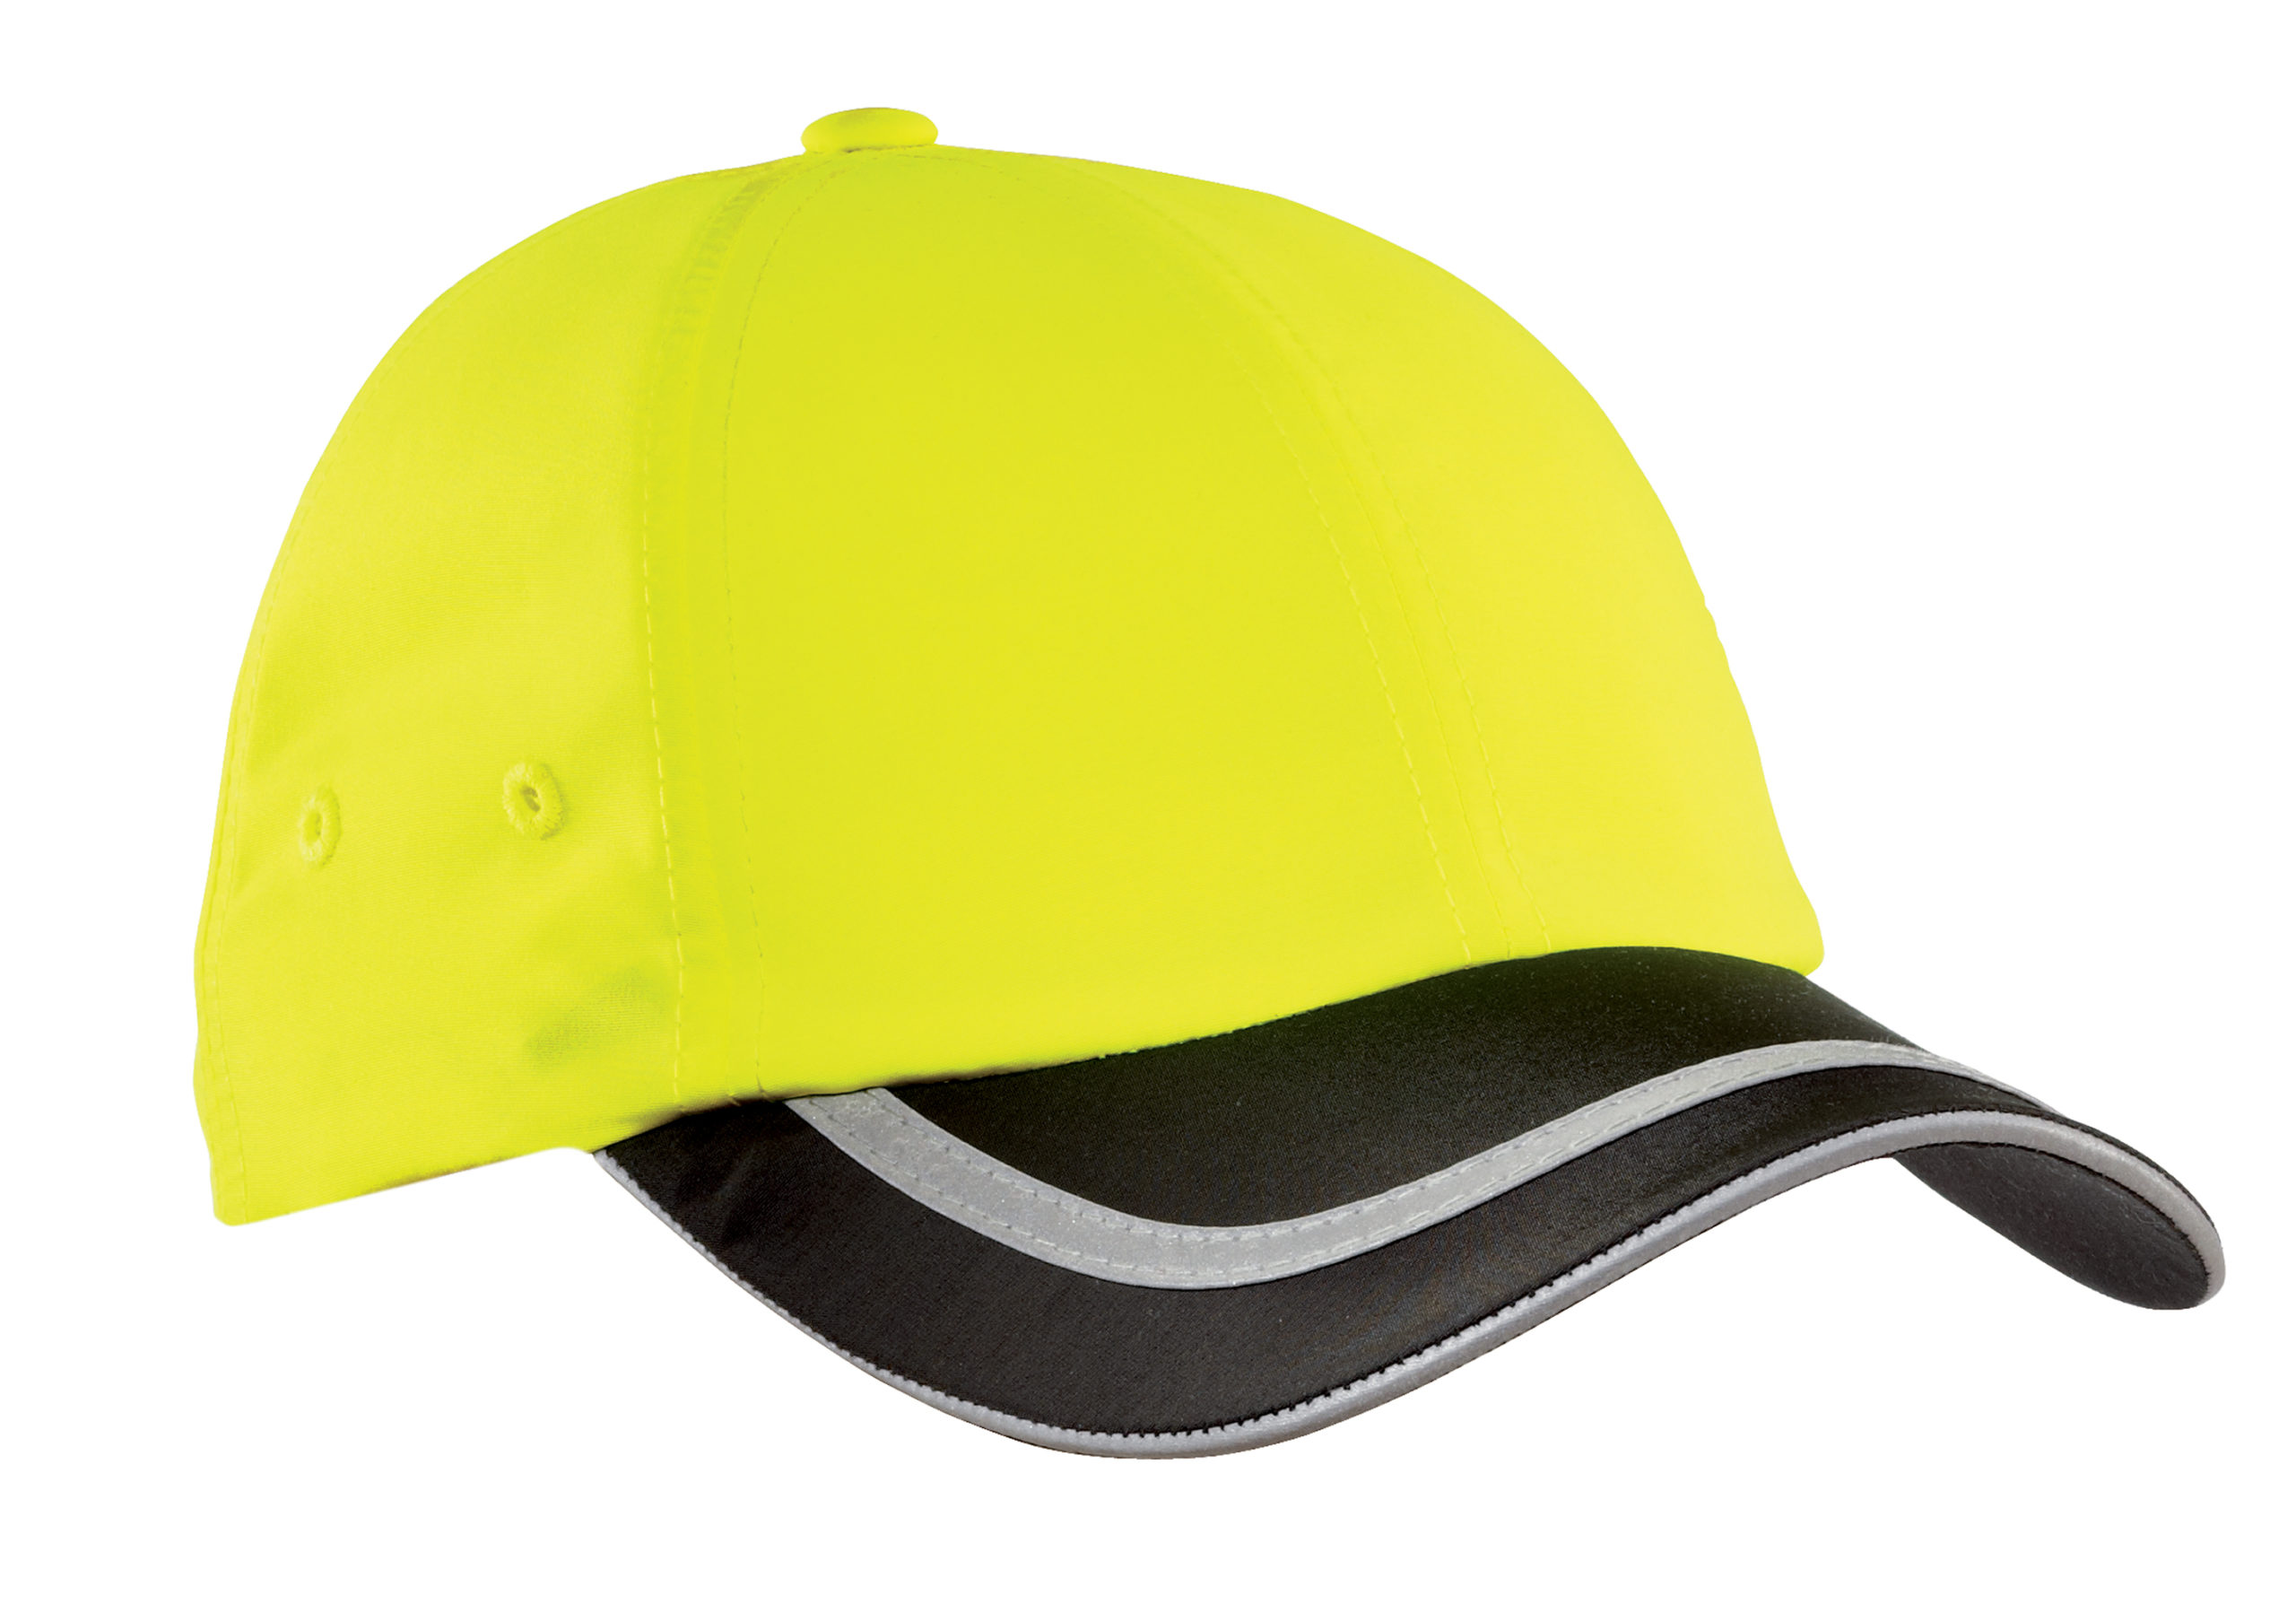 safety hat yellow and black